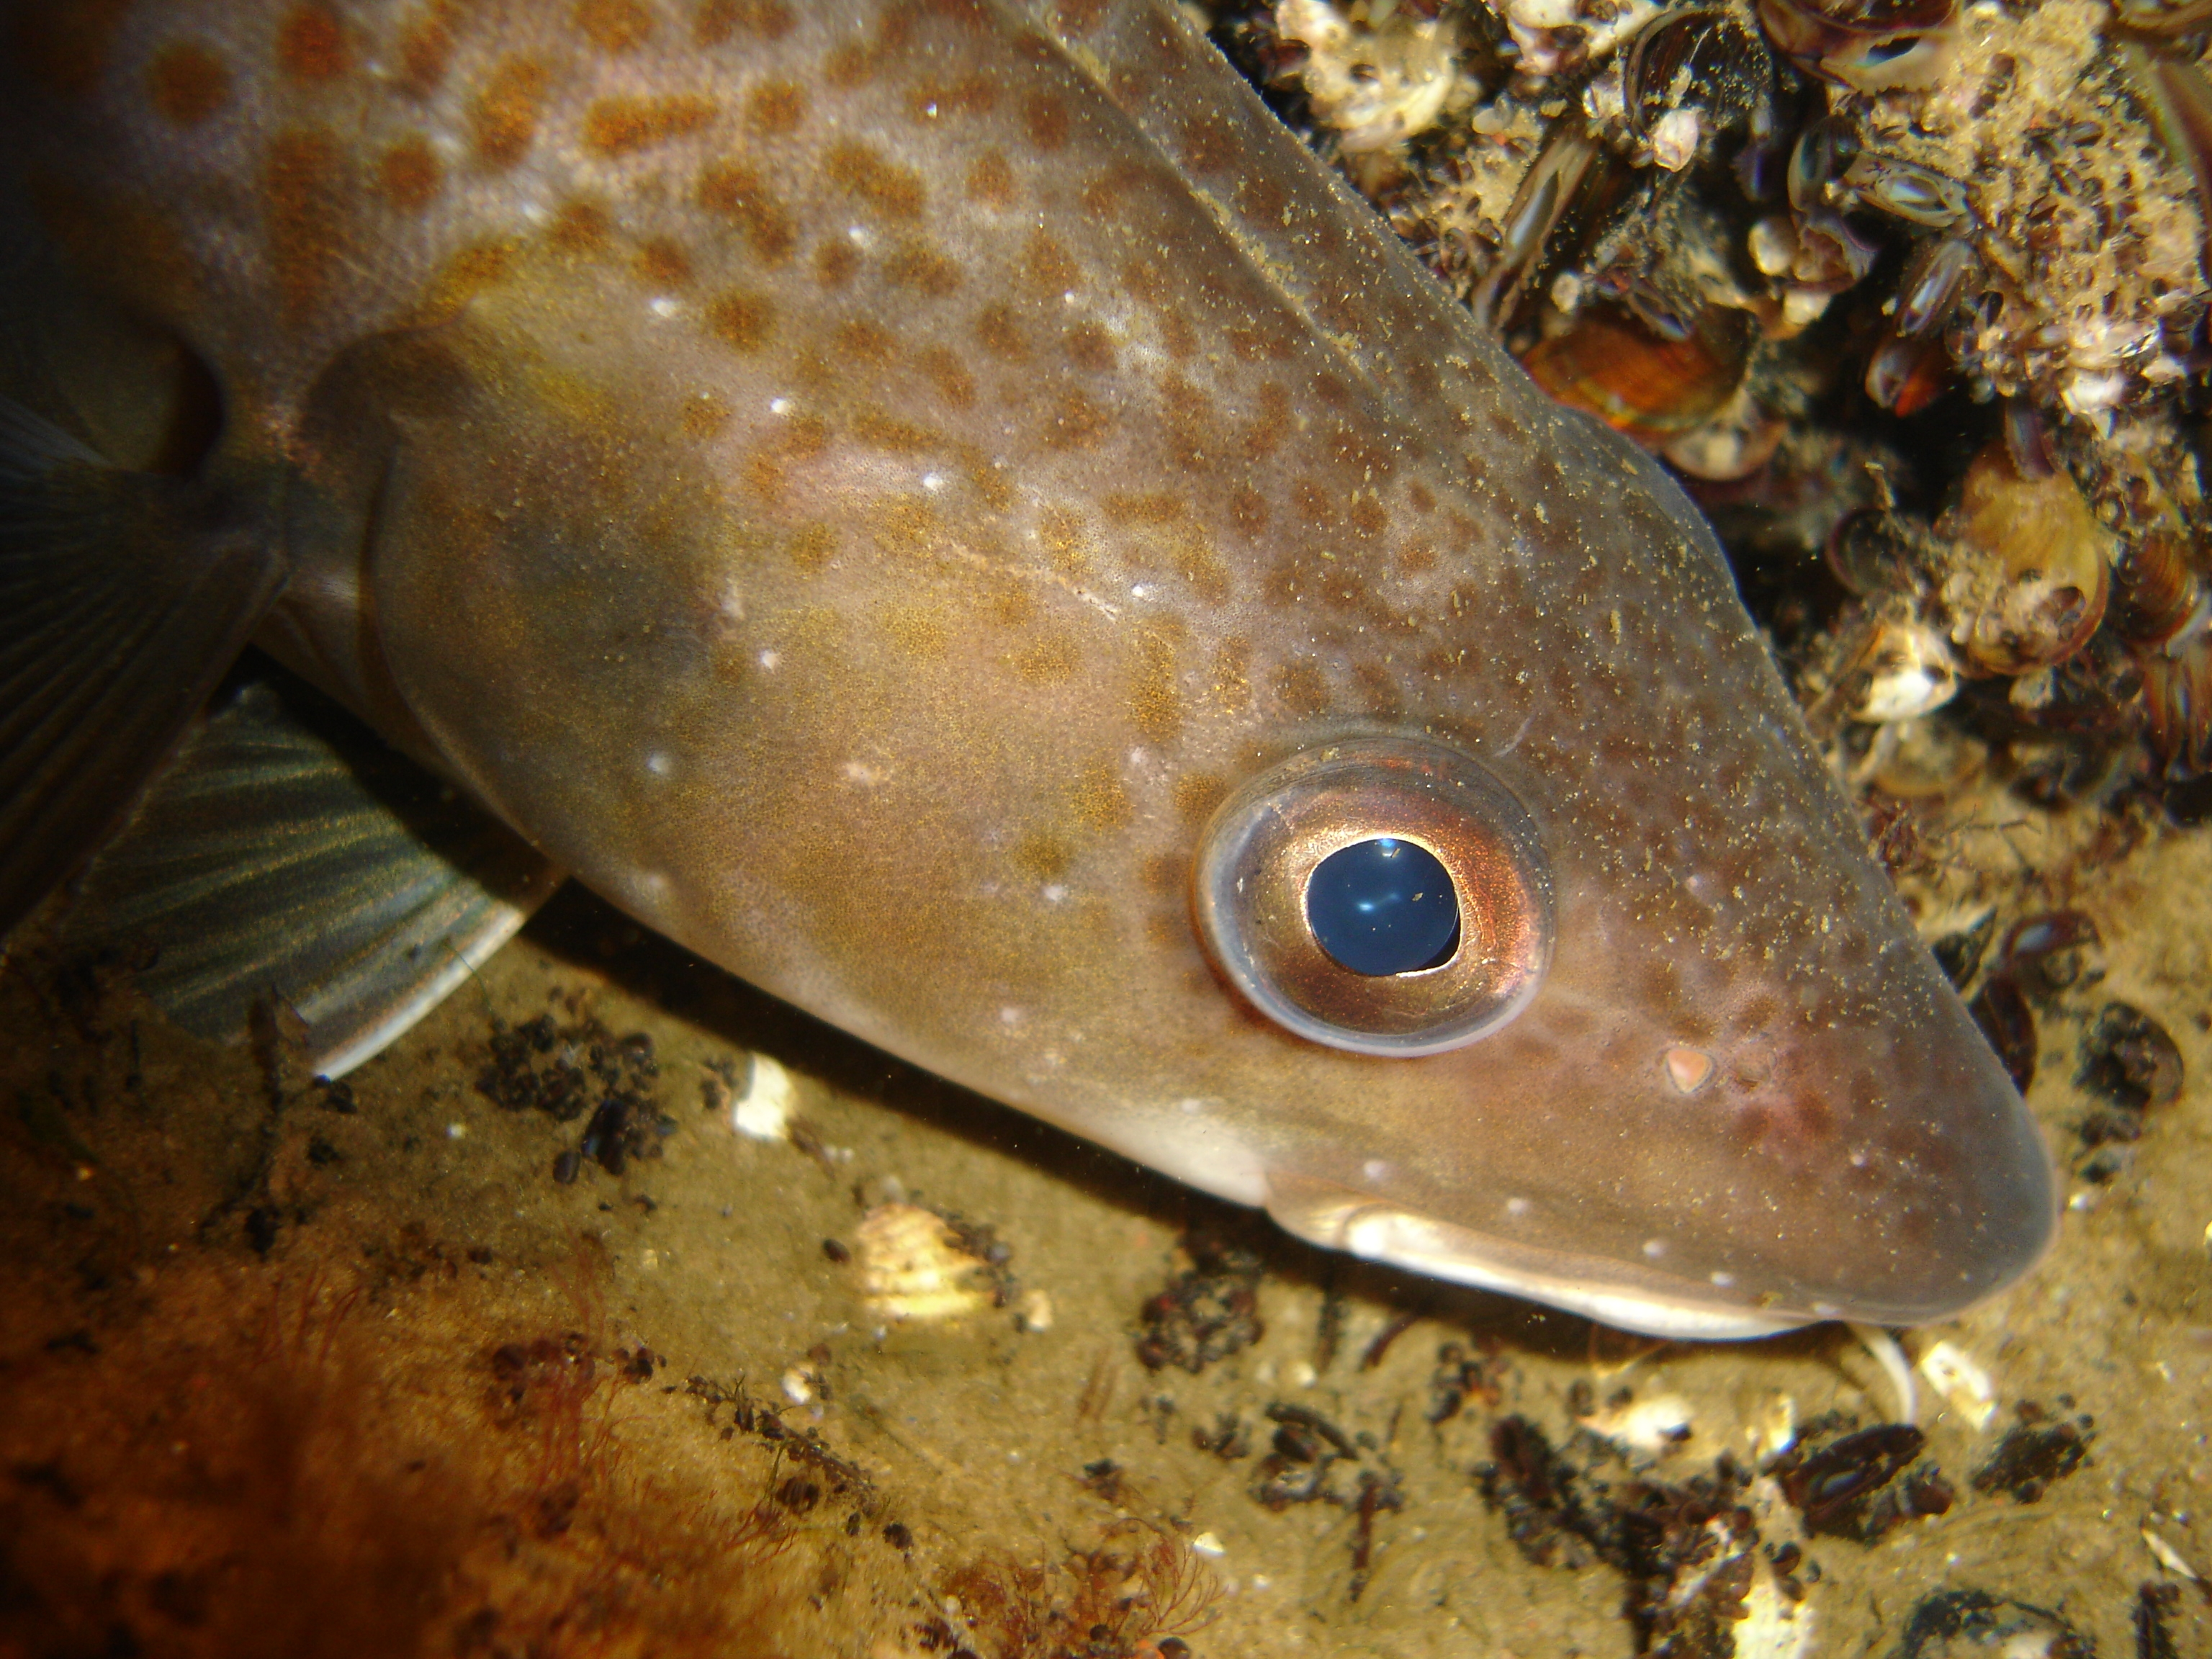 Overfishing causes collapse of cod fisheries in Baltic Sea ...